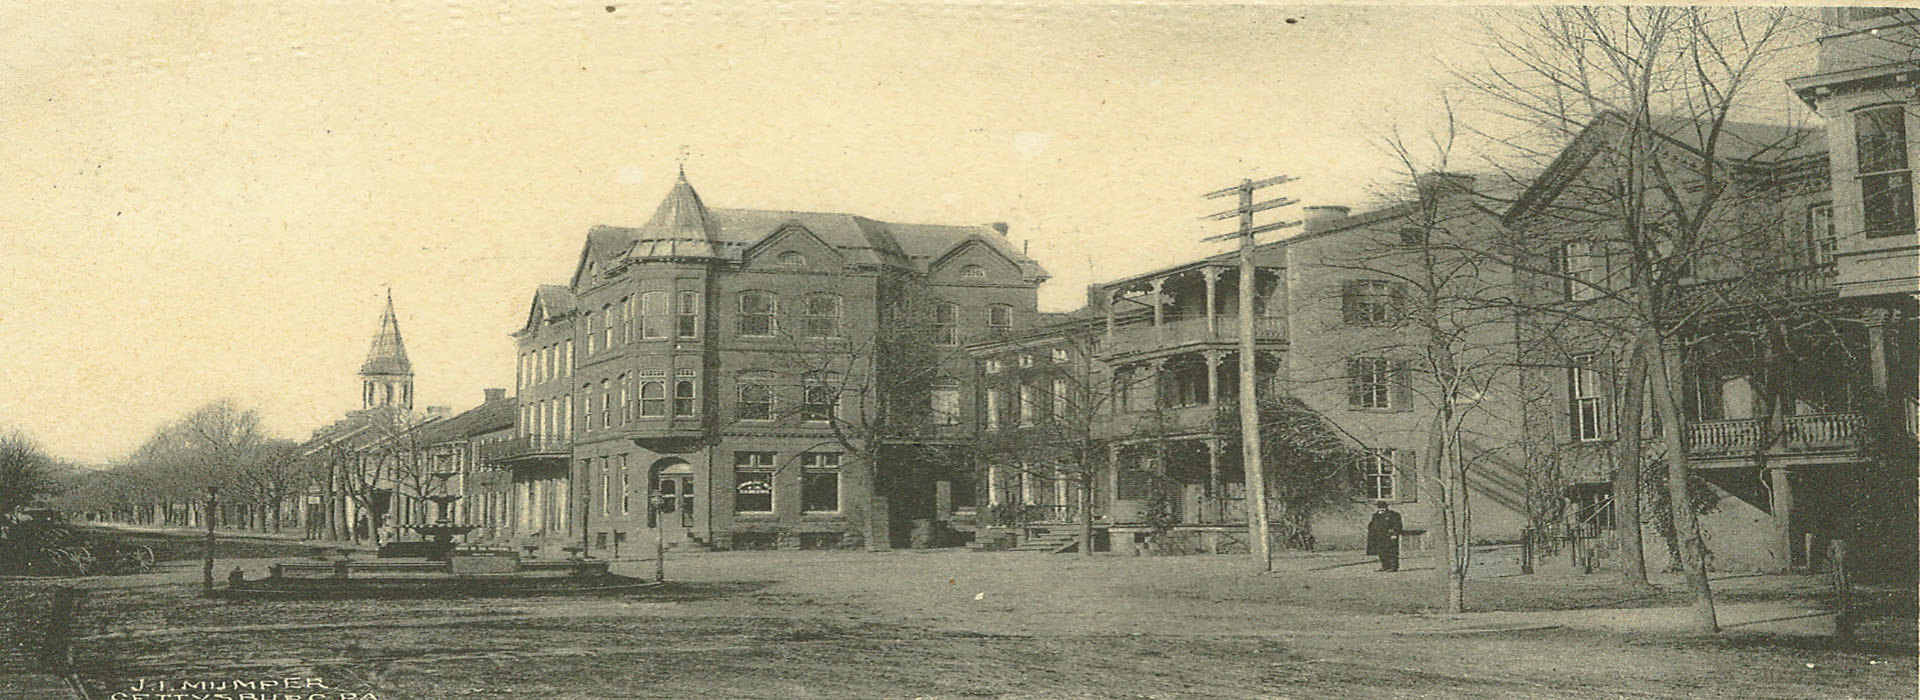 Early 1900s Town Square